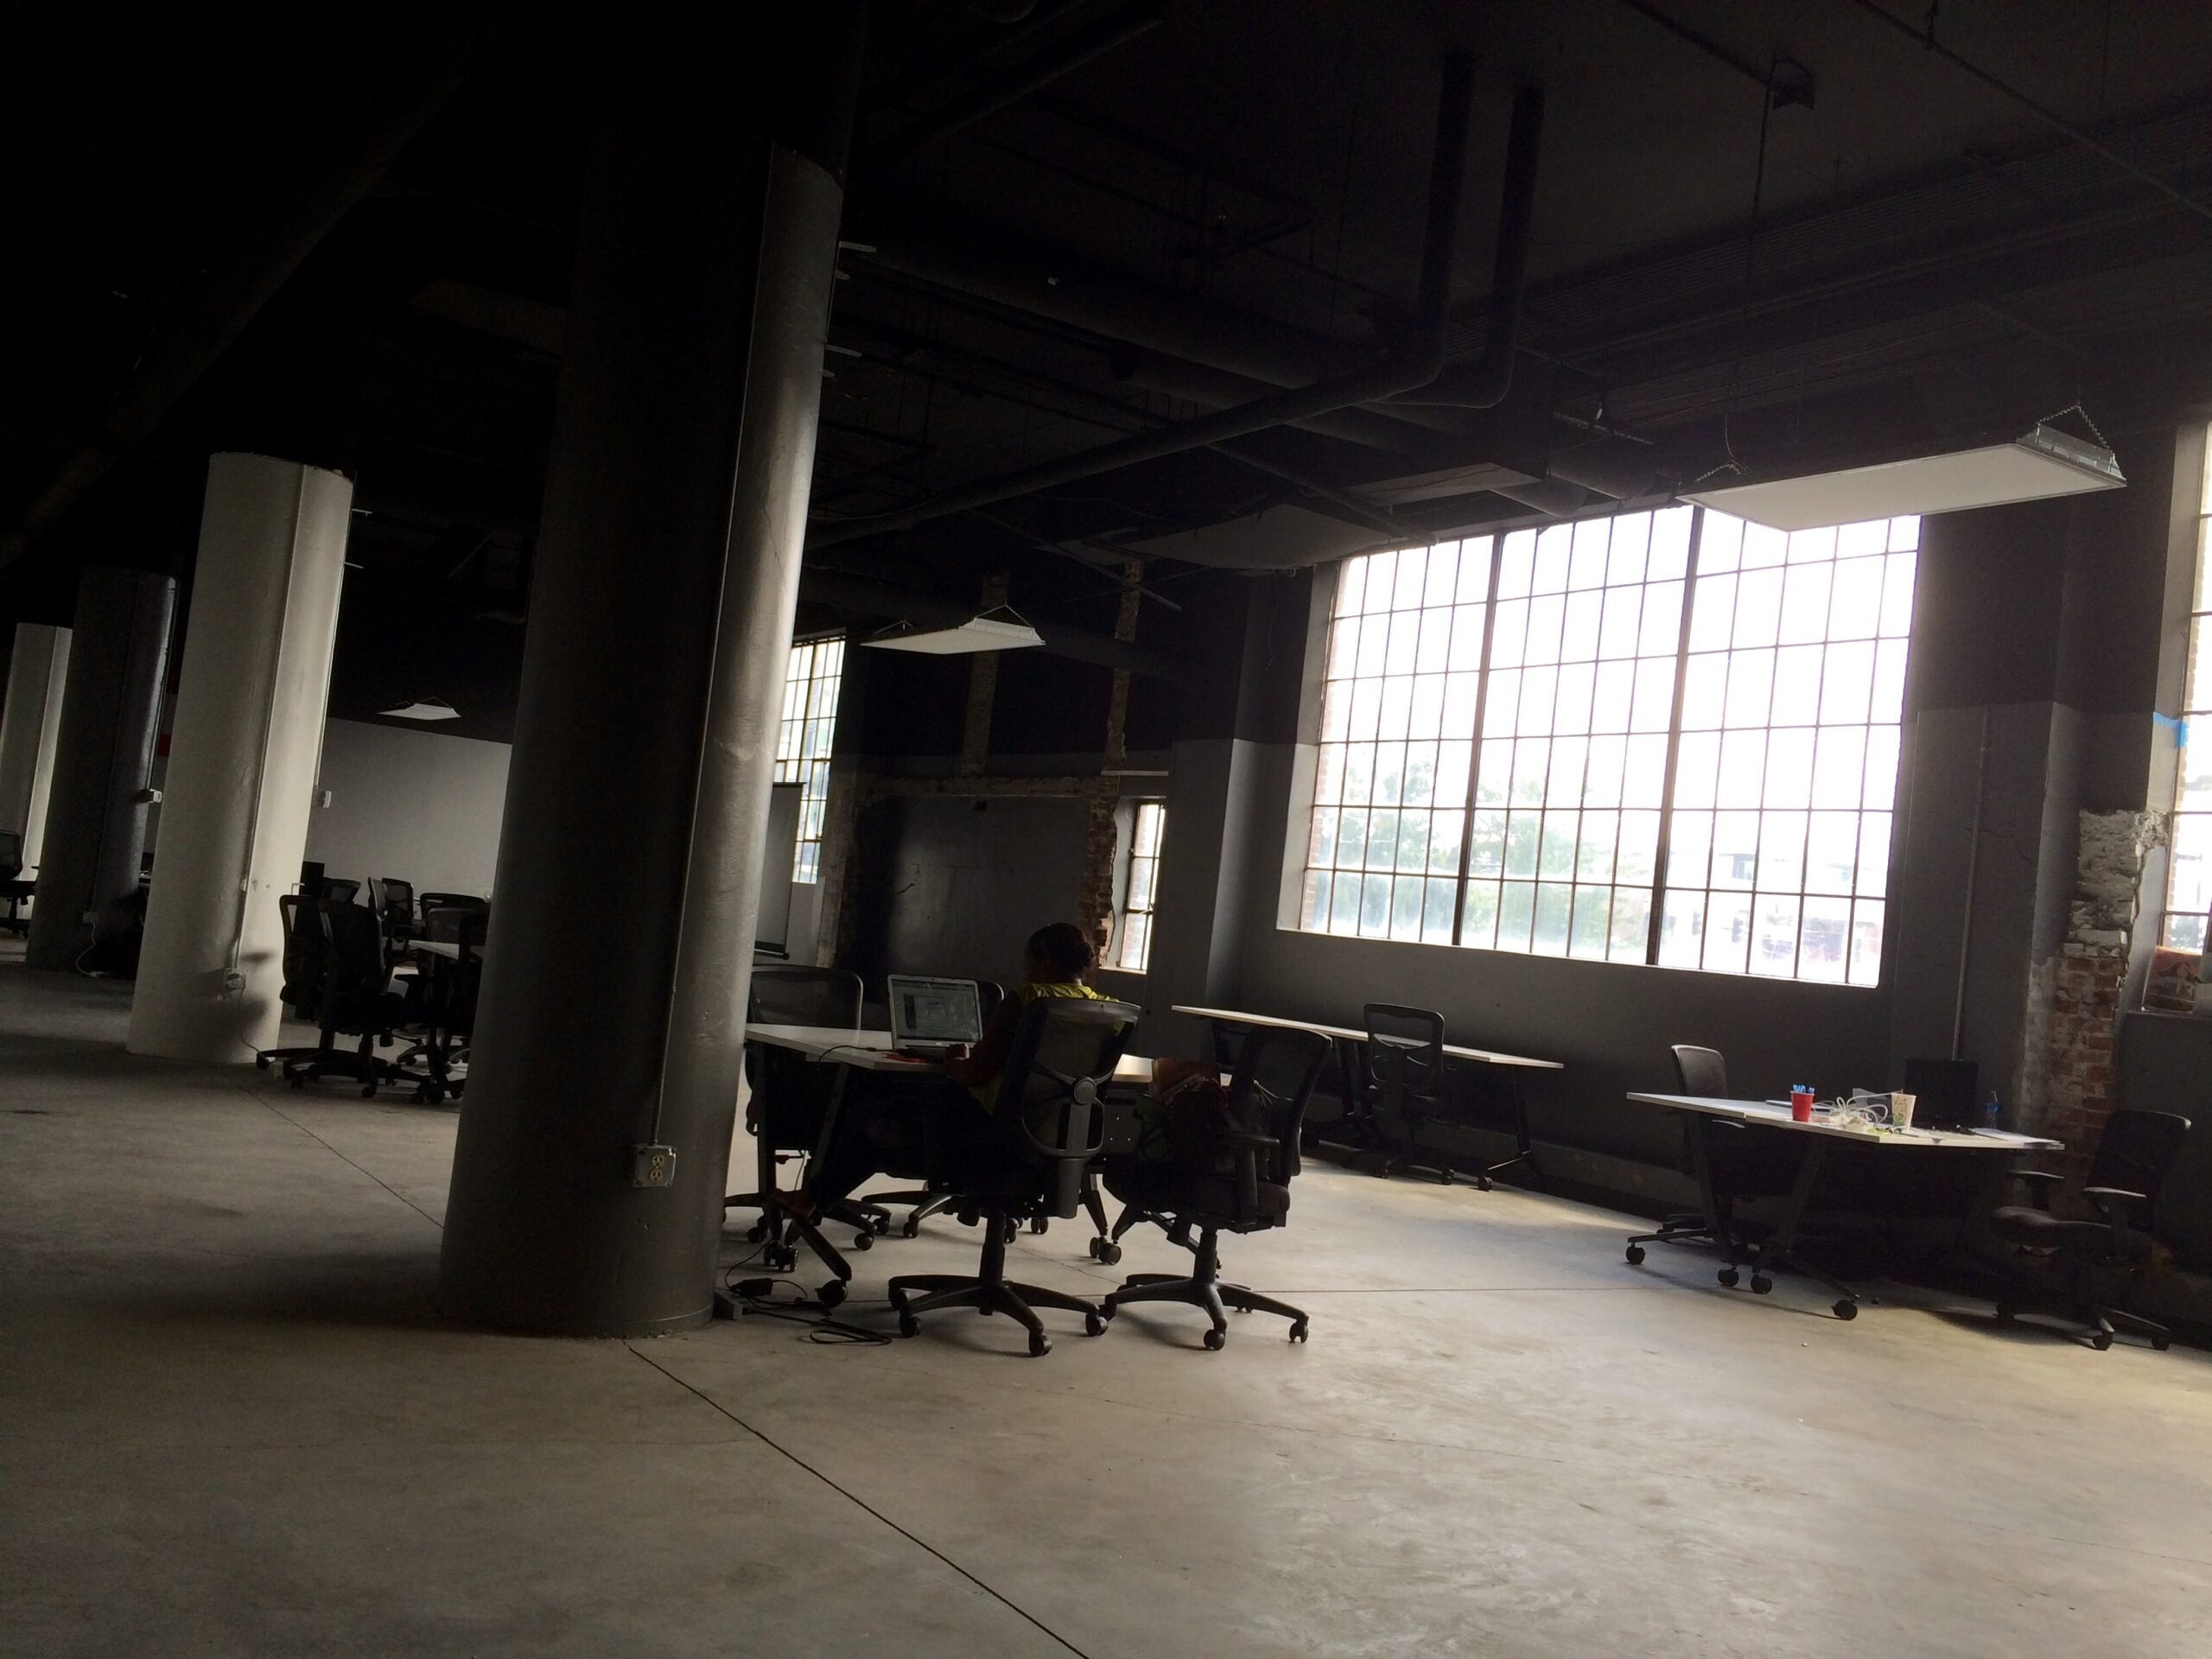 The new look of the American office